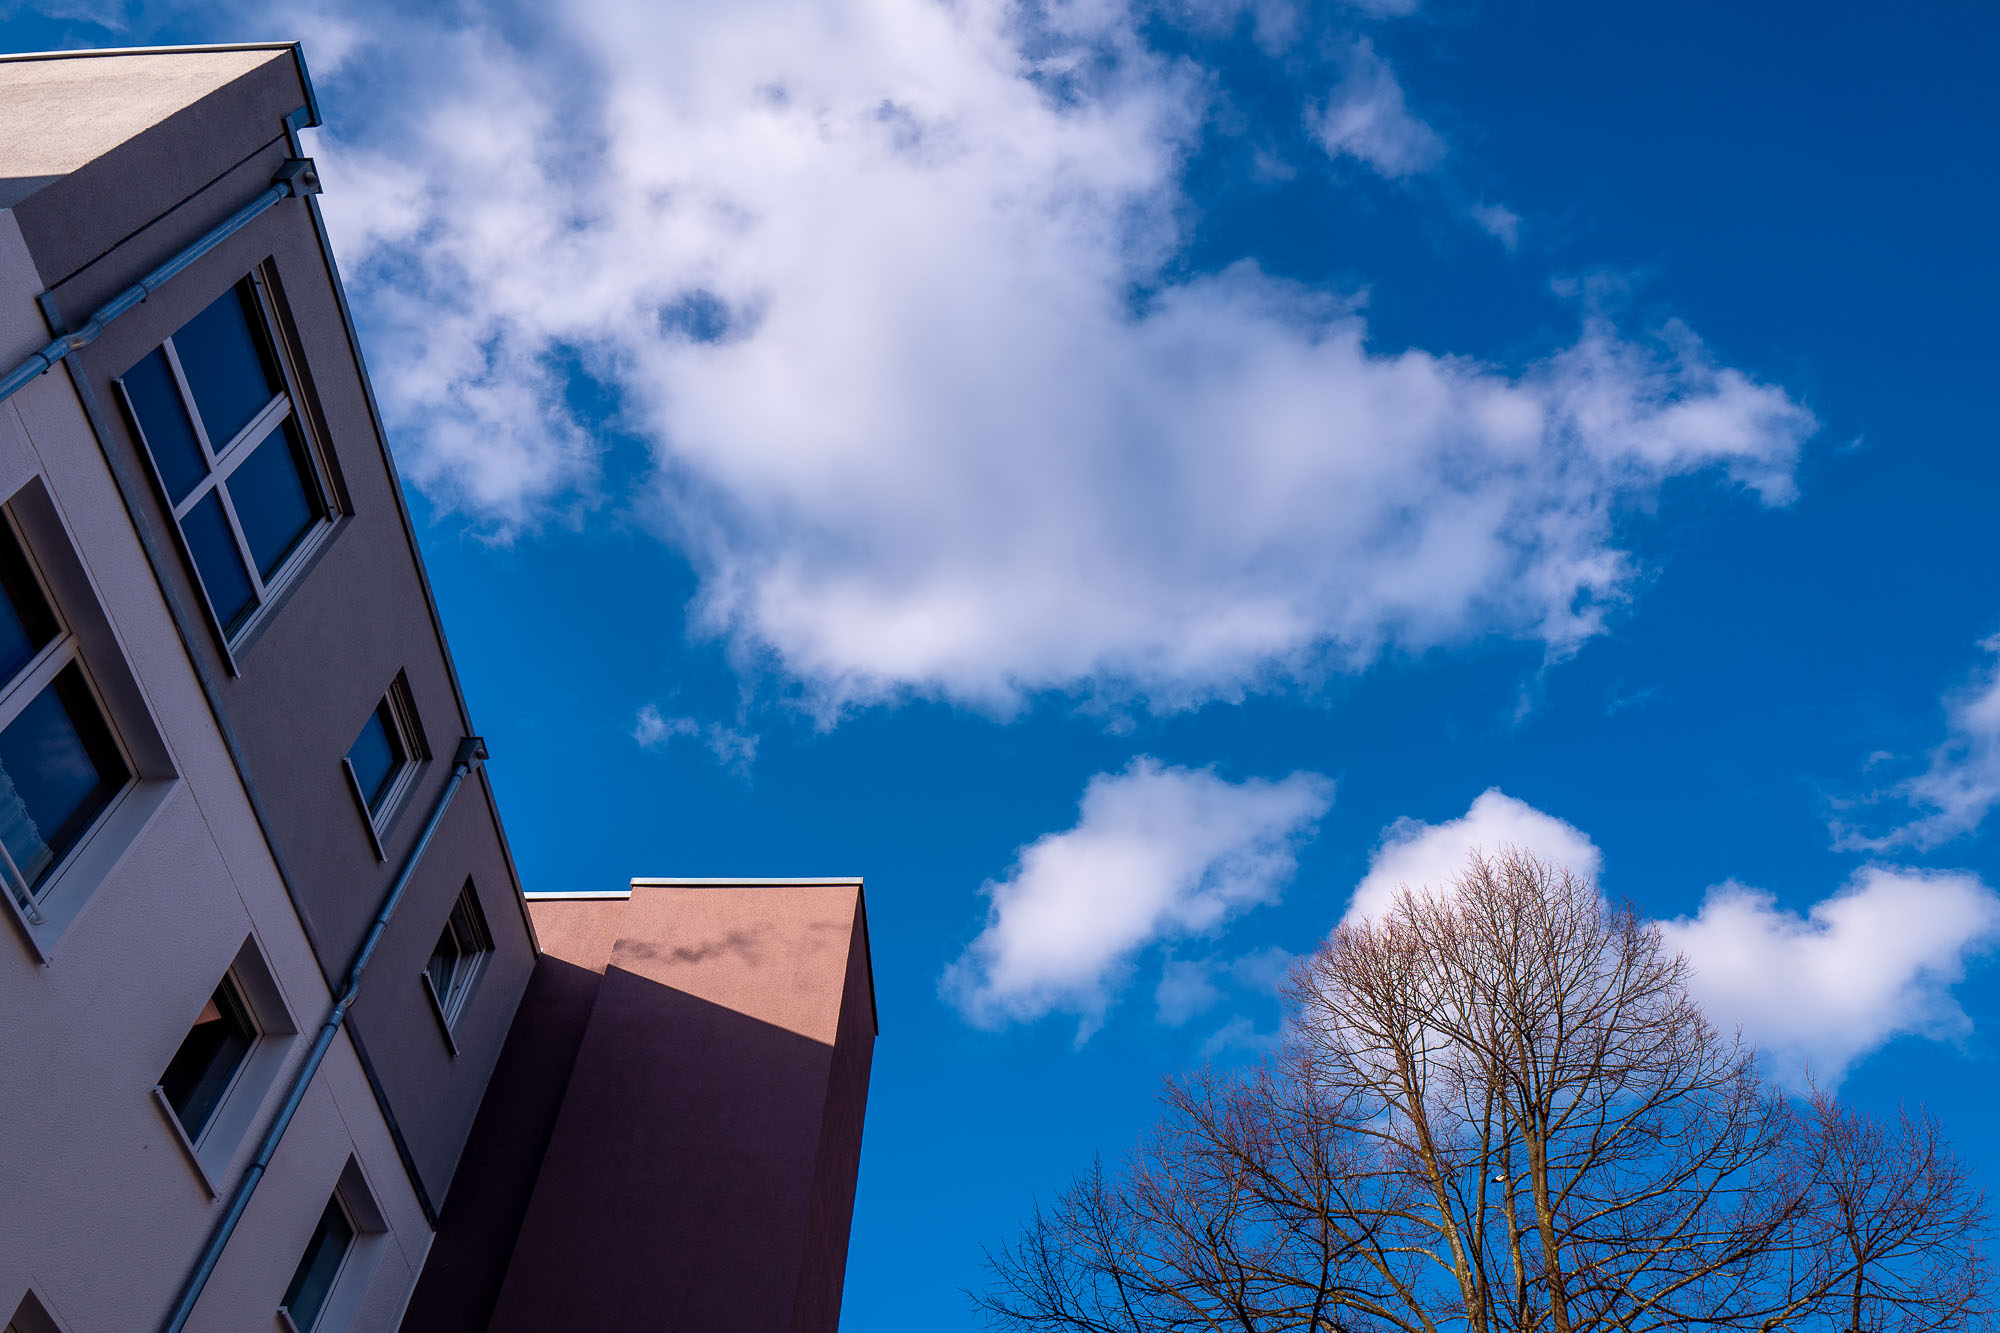 Looking up at a house, blue sky and a tree